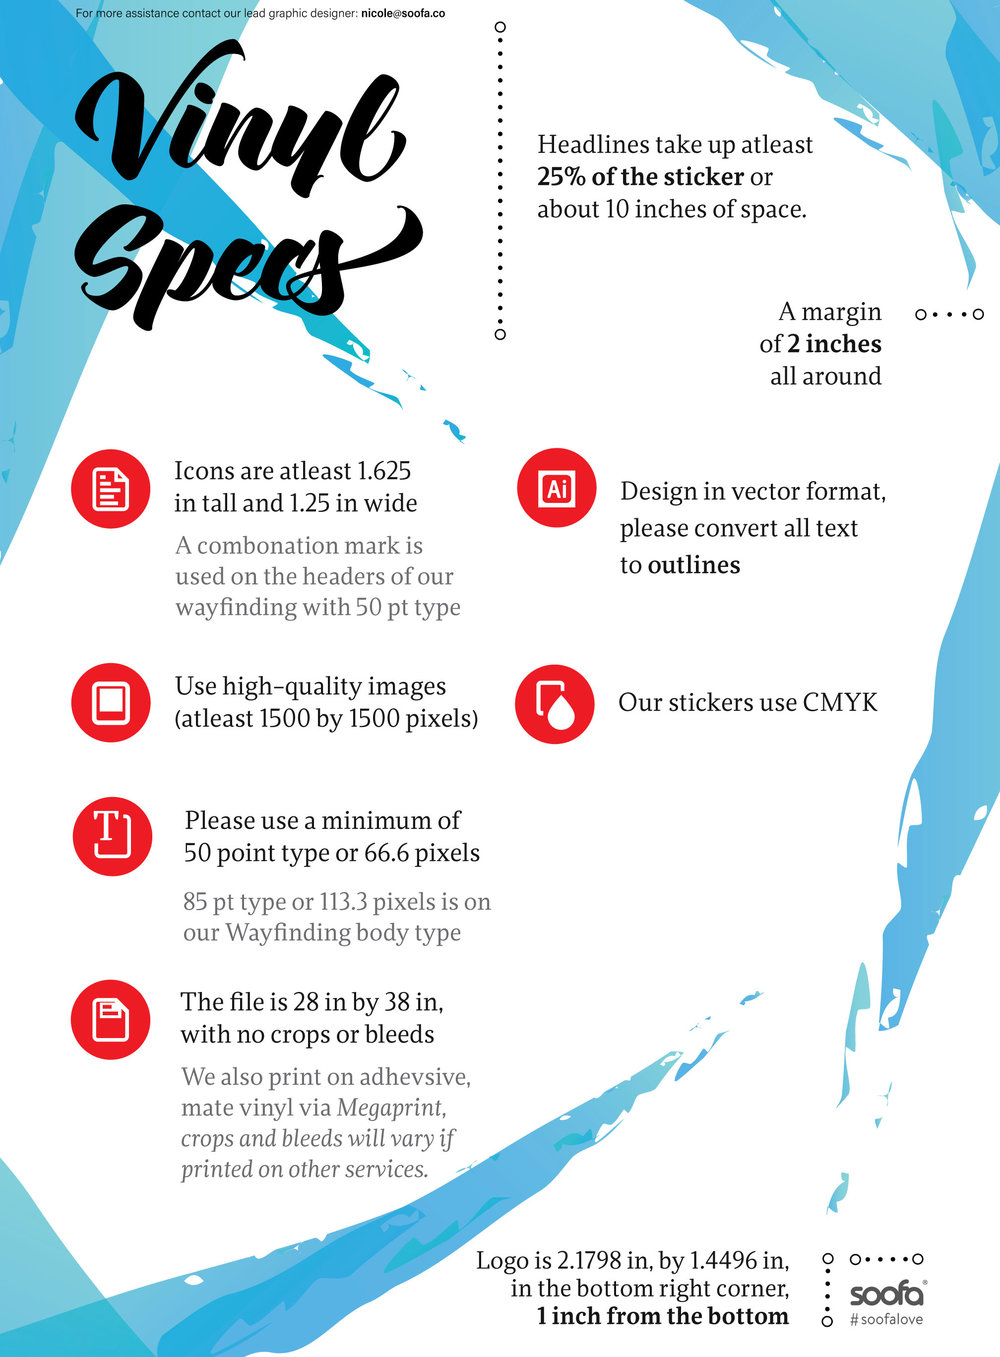 Design specifications for adhesive vinyl decal advertisements. Click image for full-size.